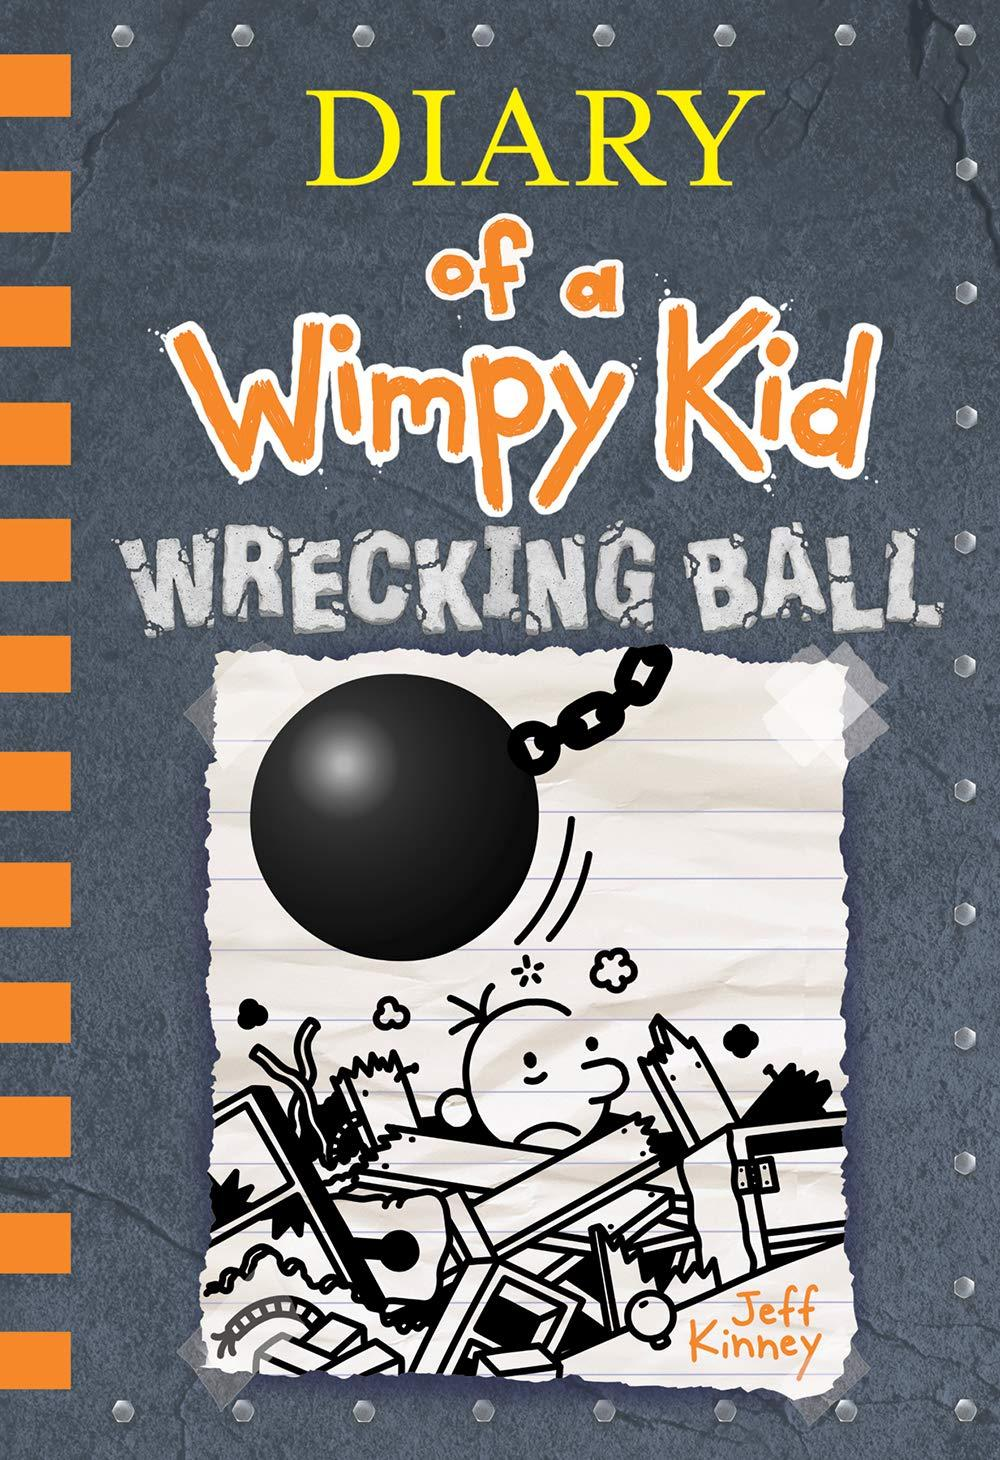 Diary Of A Wimpy Kid #14 - Wrecking Ball (UK Edition - Hardcover) Giá Rất Tiết Kiệm